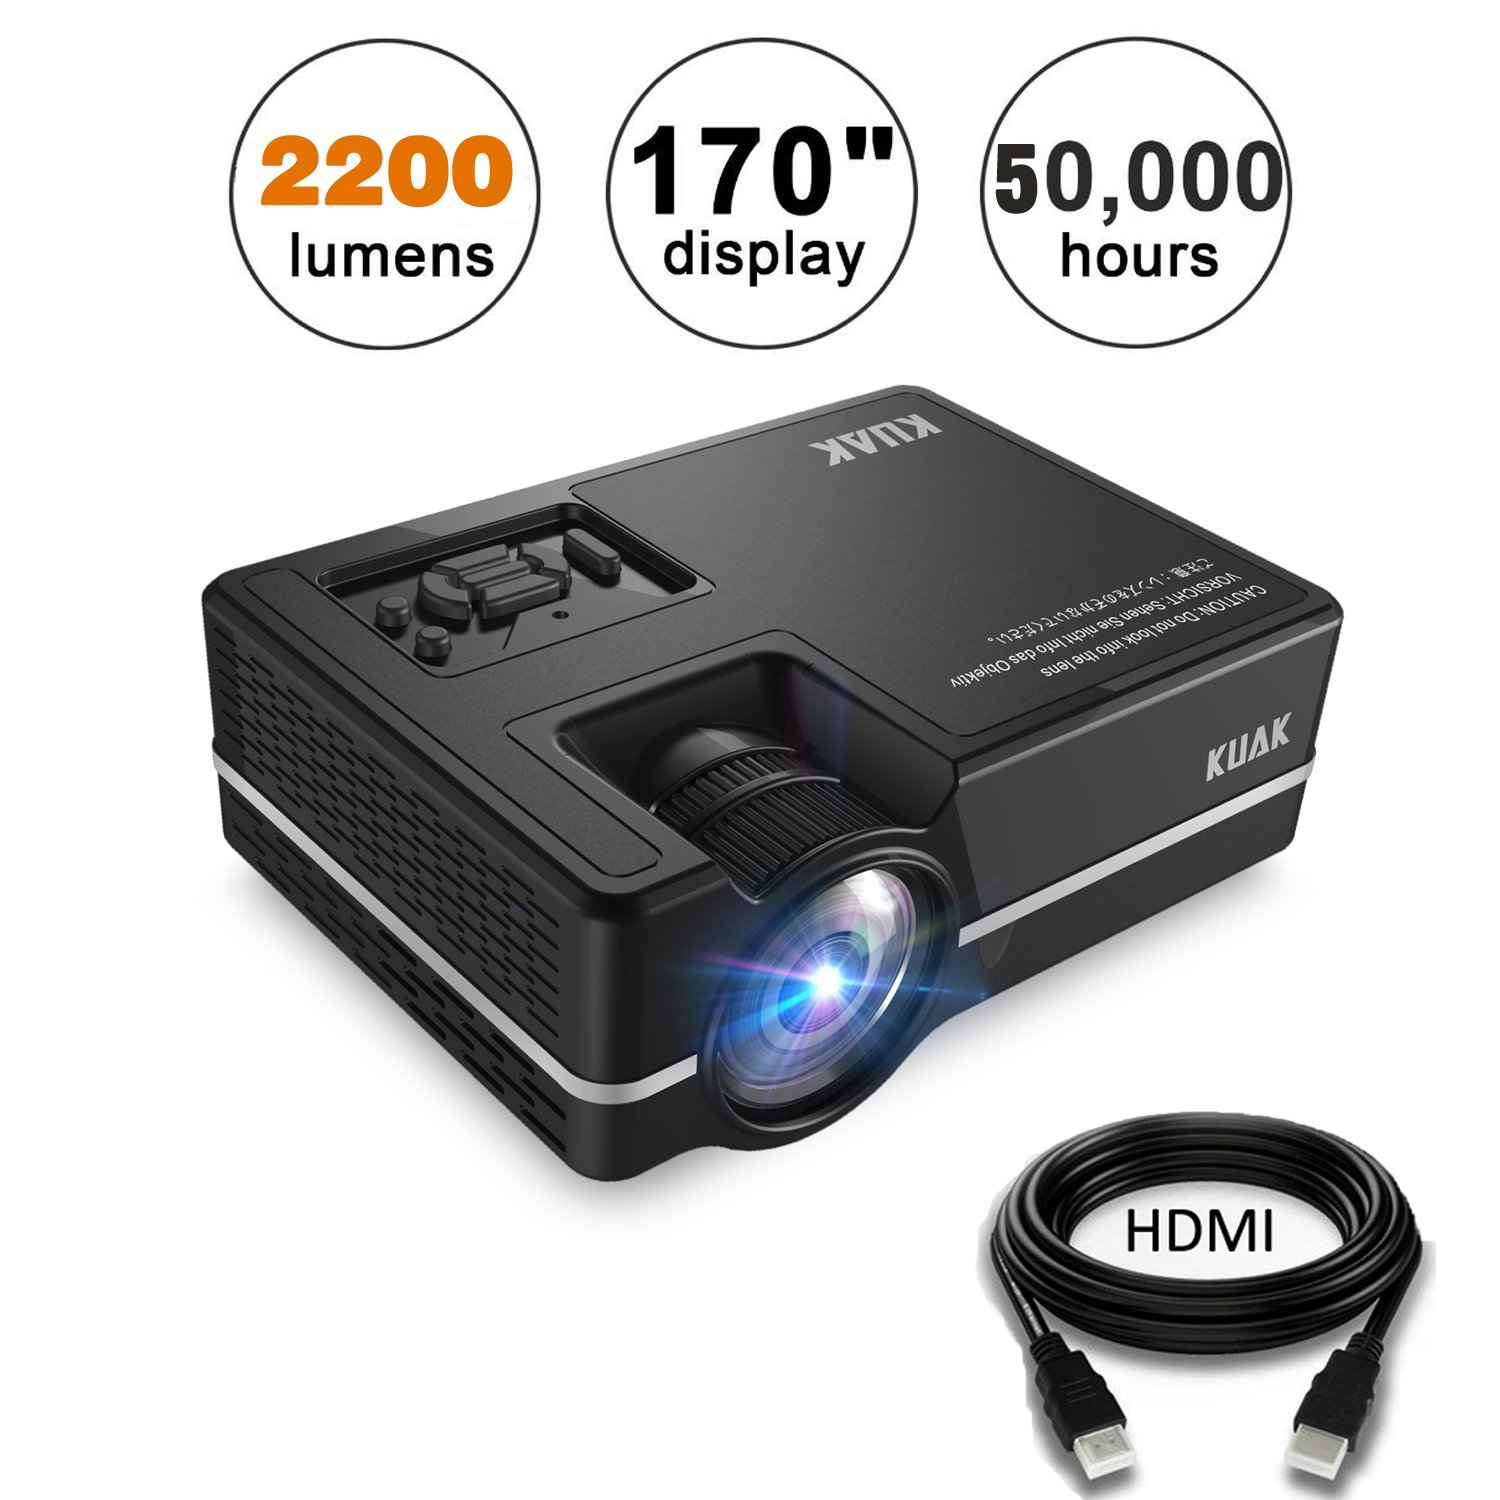 Projector, KUAK Mini Projector 2200 Lumens 170'' Display, Portable Multimedia Home Theater LED Video Projector Support HD 1080P HDMI VGA USB SD AV TV for Smartphone Laptop Fire TV Stick etc,HT30&Silver by KUAK